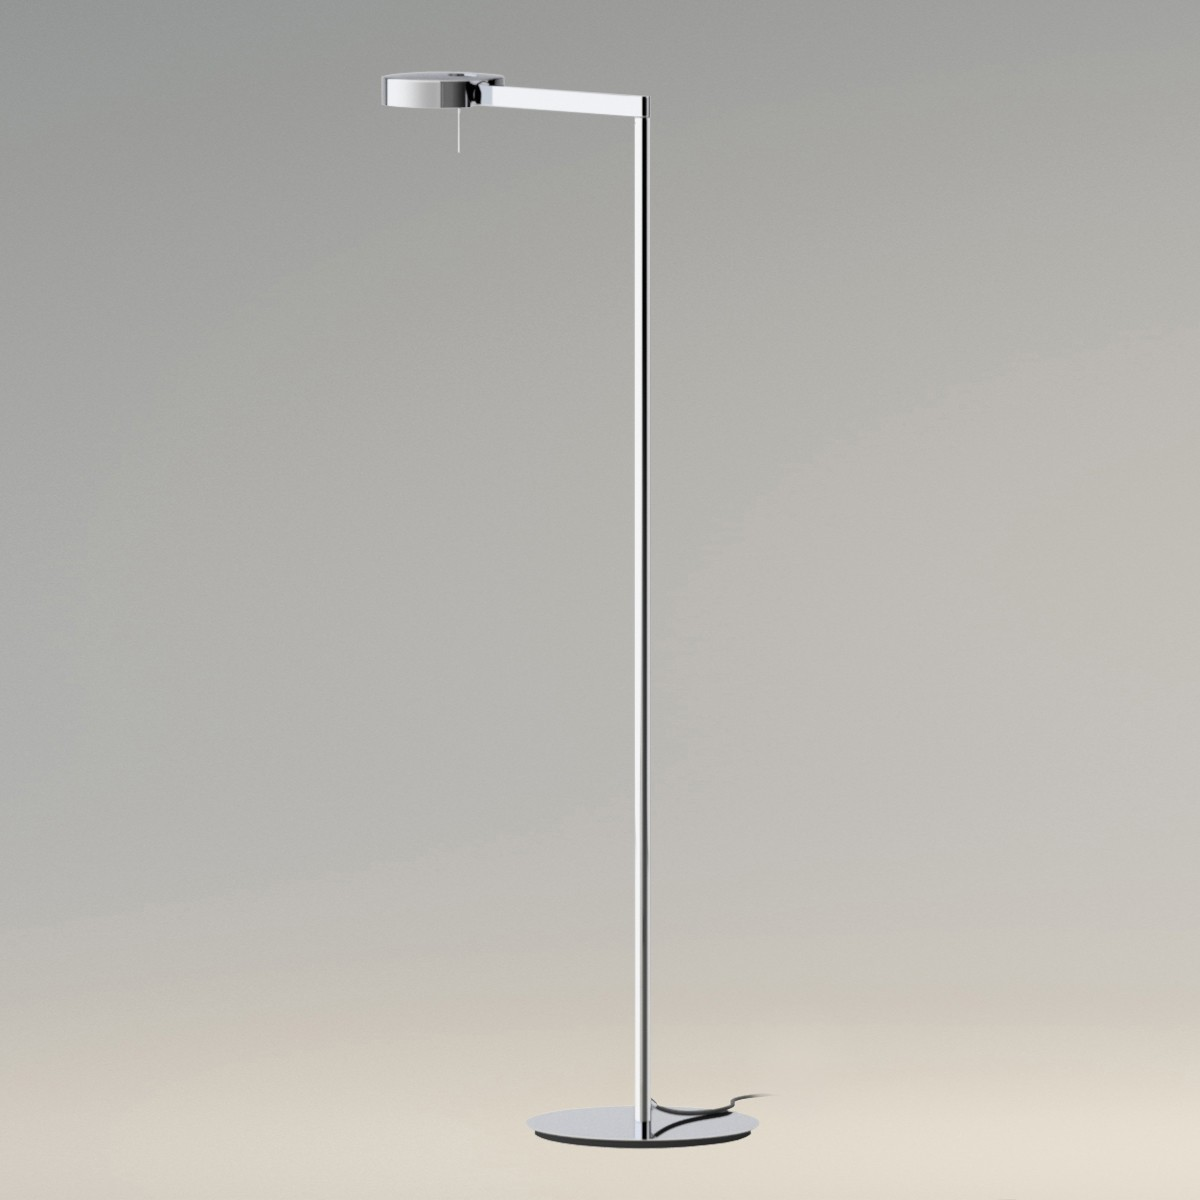 Vibia Swing 0516 Stehleuchte, Chrom